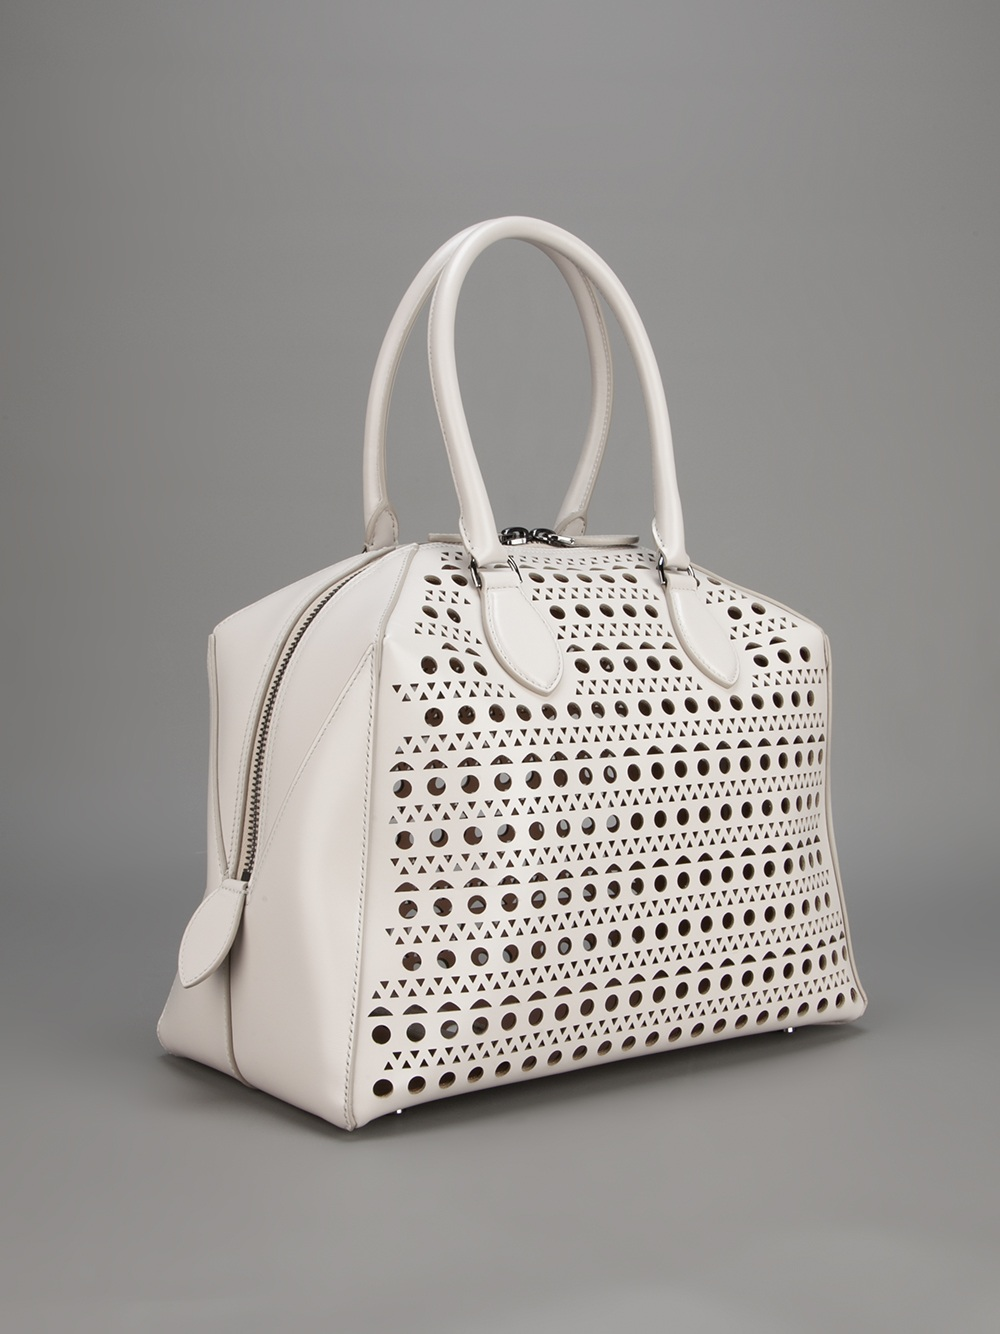 Women's White Perforated Small Leather Bucket Bag - Lyst